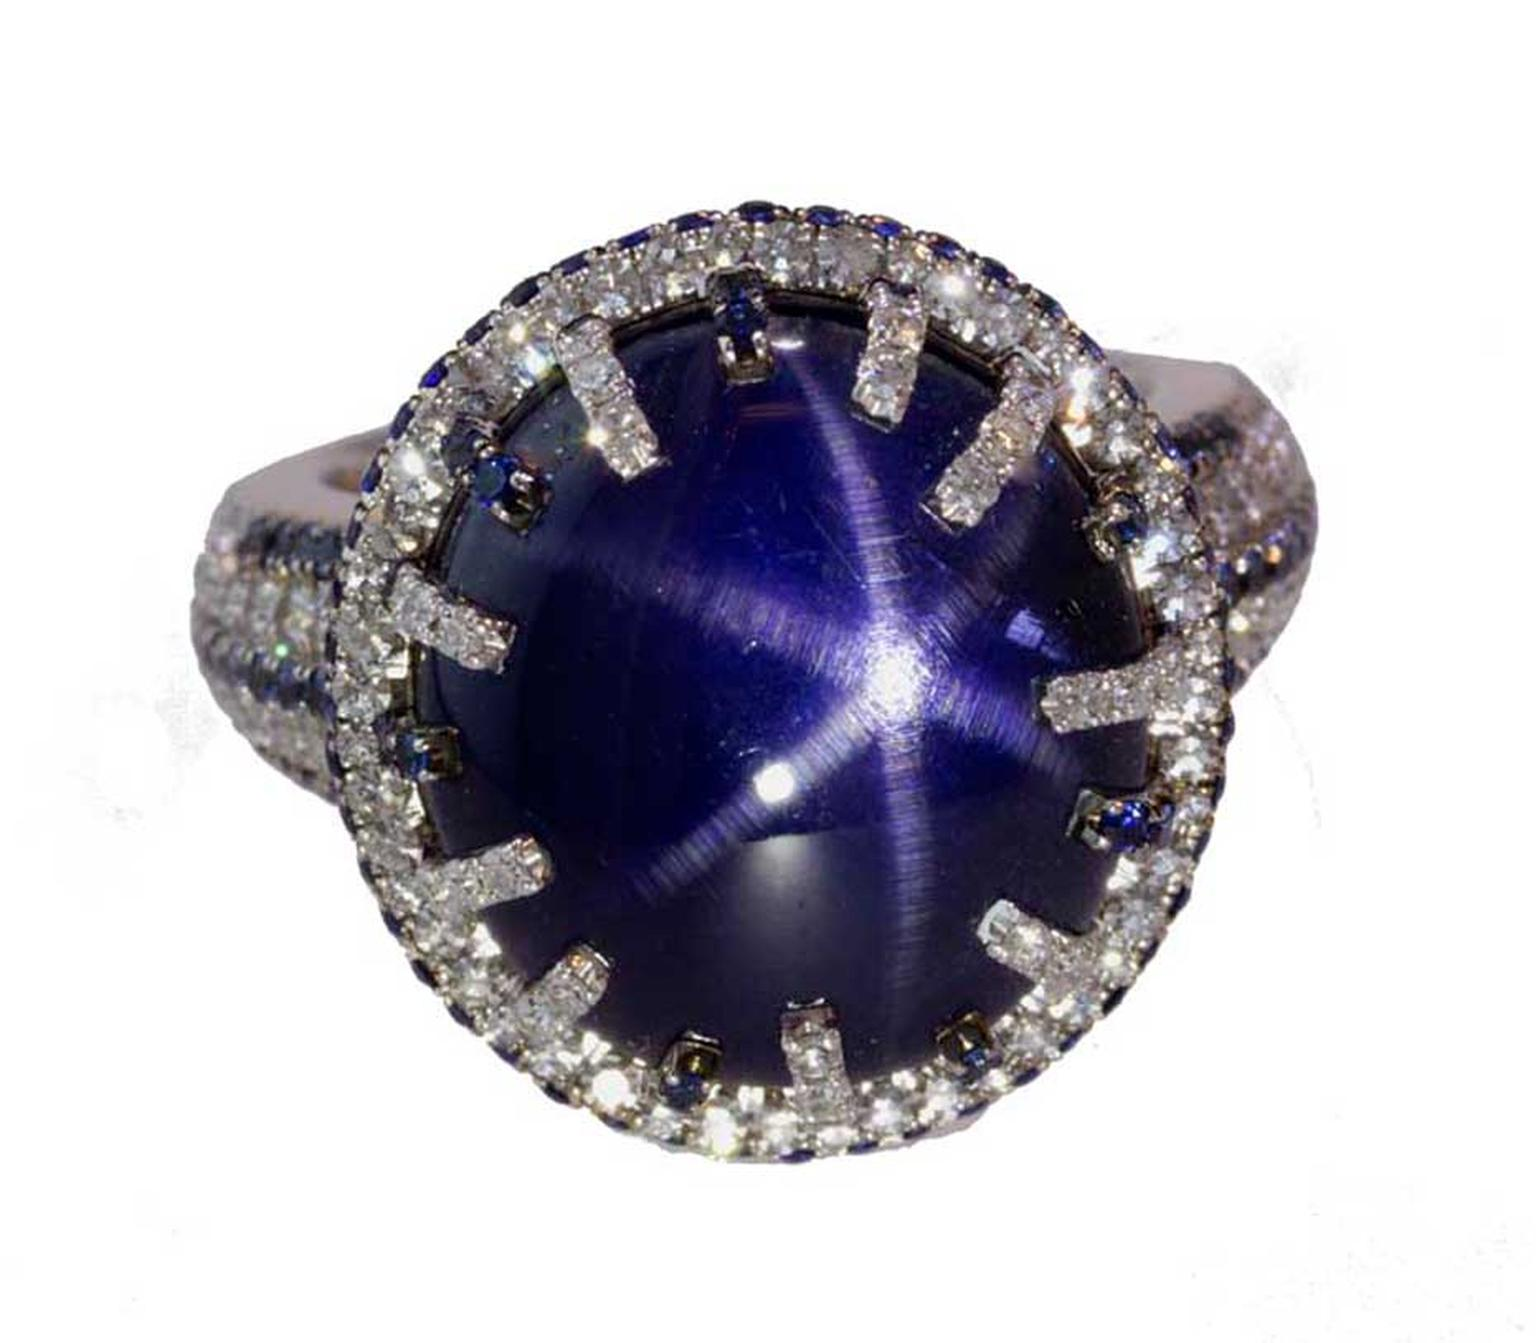 Martin Katz white gold ring with a central star sapphire cabochon from Sri Lanka.